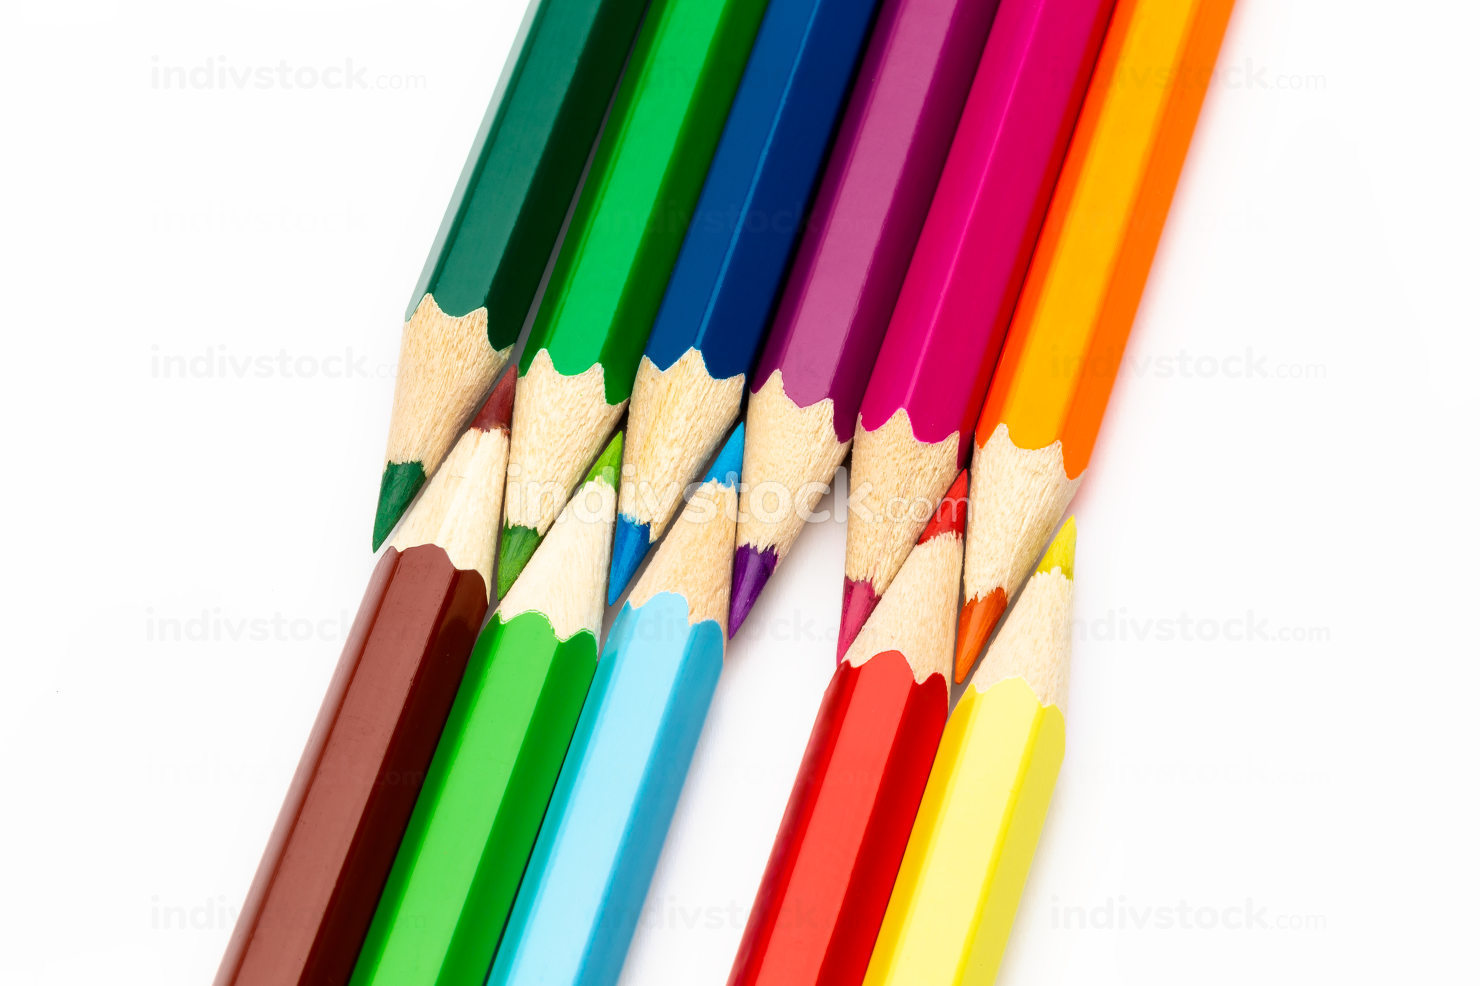 Wooden colored pencils of different colors on a white background